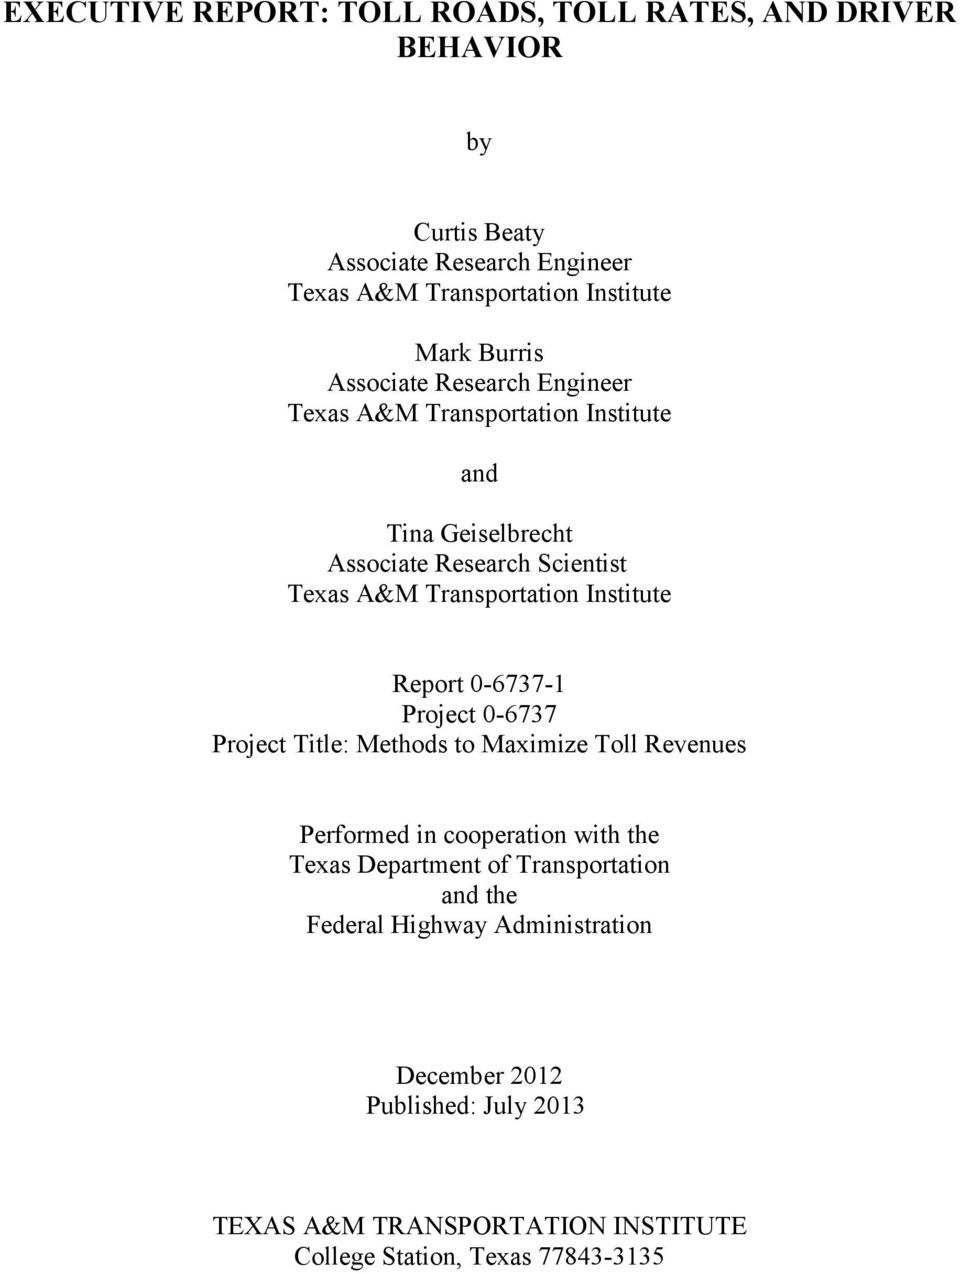 Institute Report 0-6737-1 Project 0-6737 Project Title: Methods to Maximize Toll Revenues Performed in cooperation with the Texas Department of